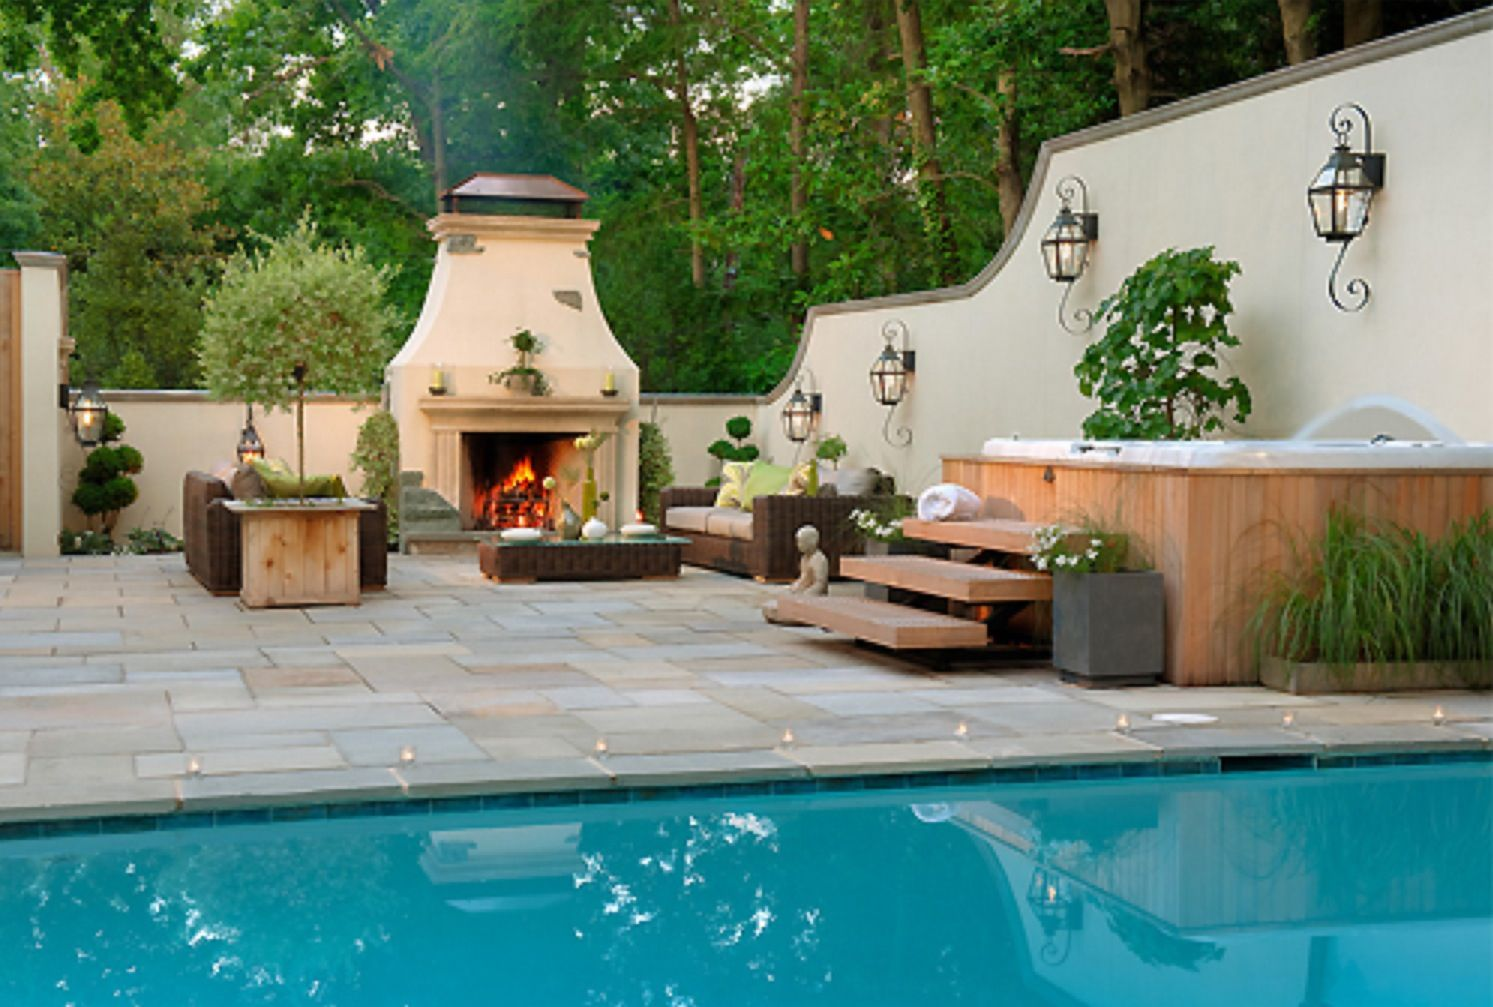 great entertaining area pool barbecue outside fireplace